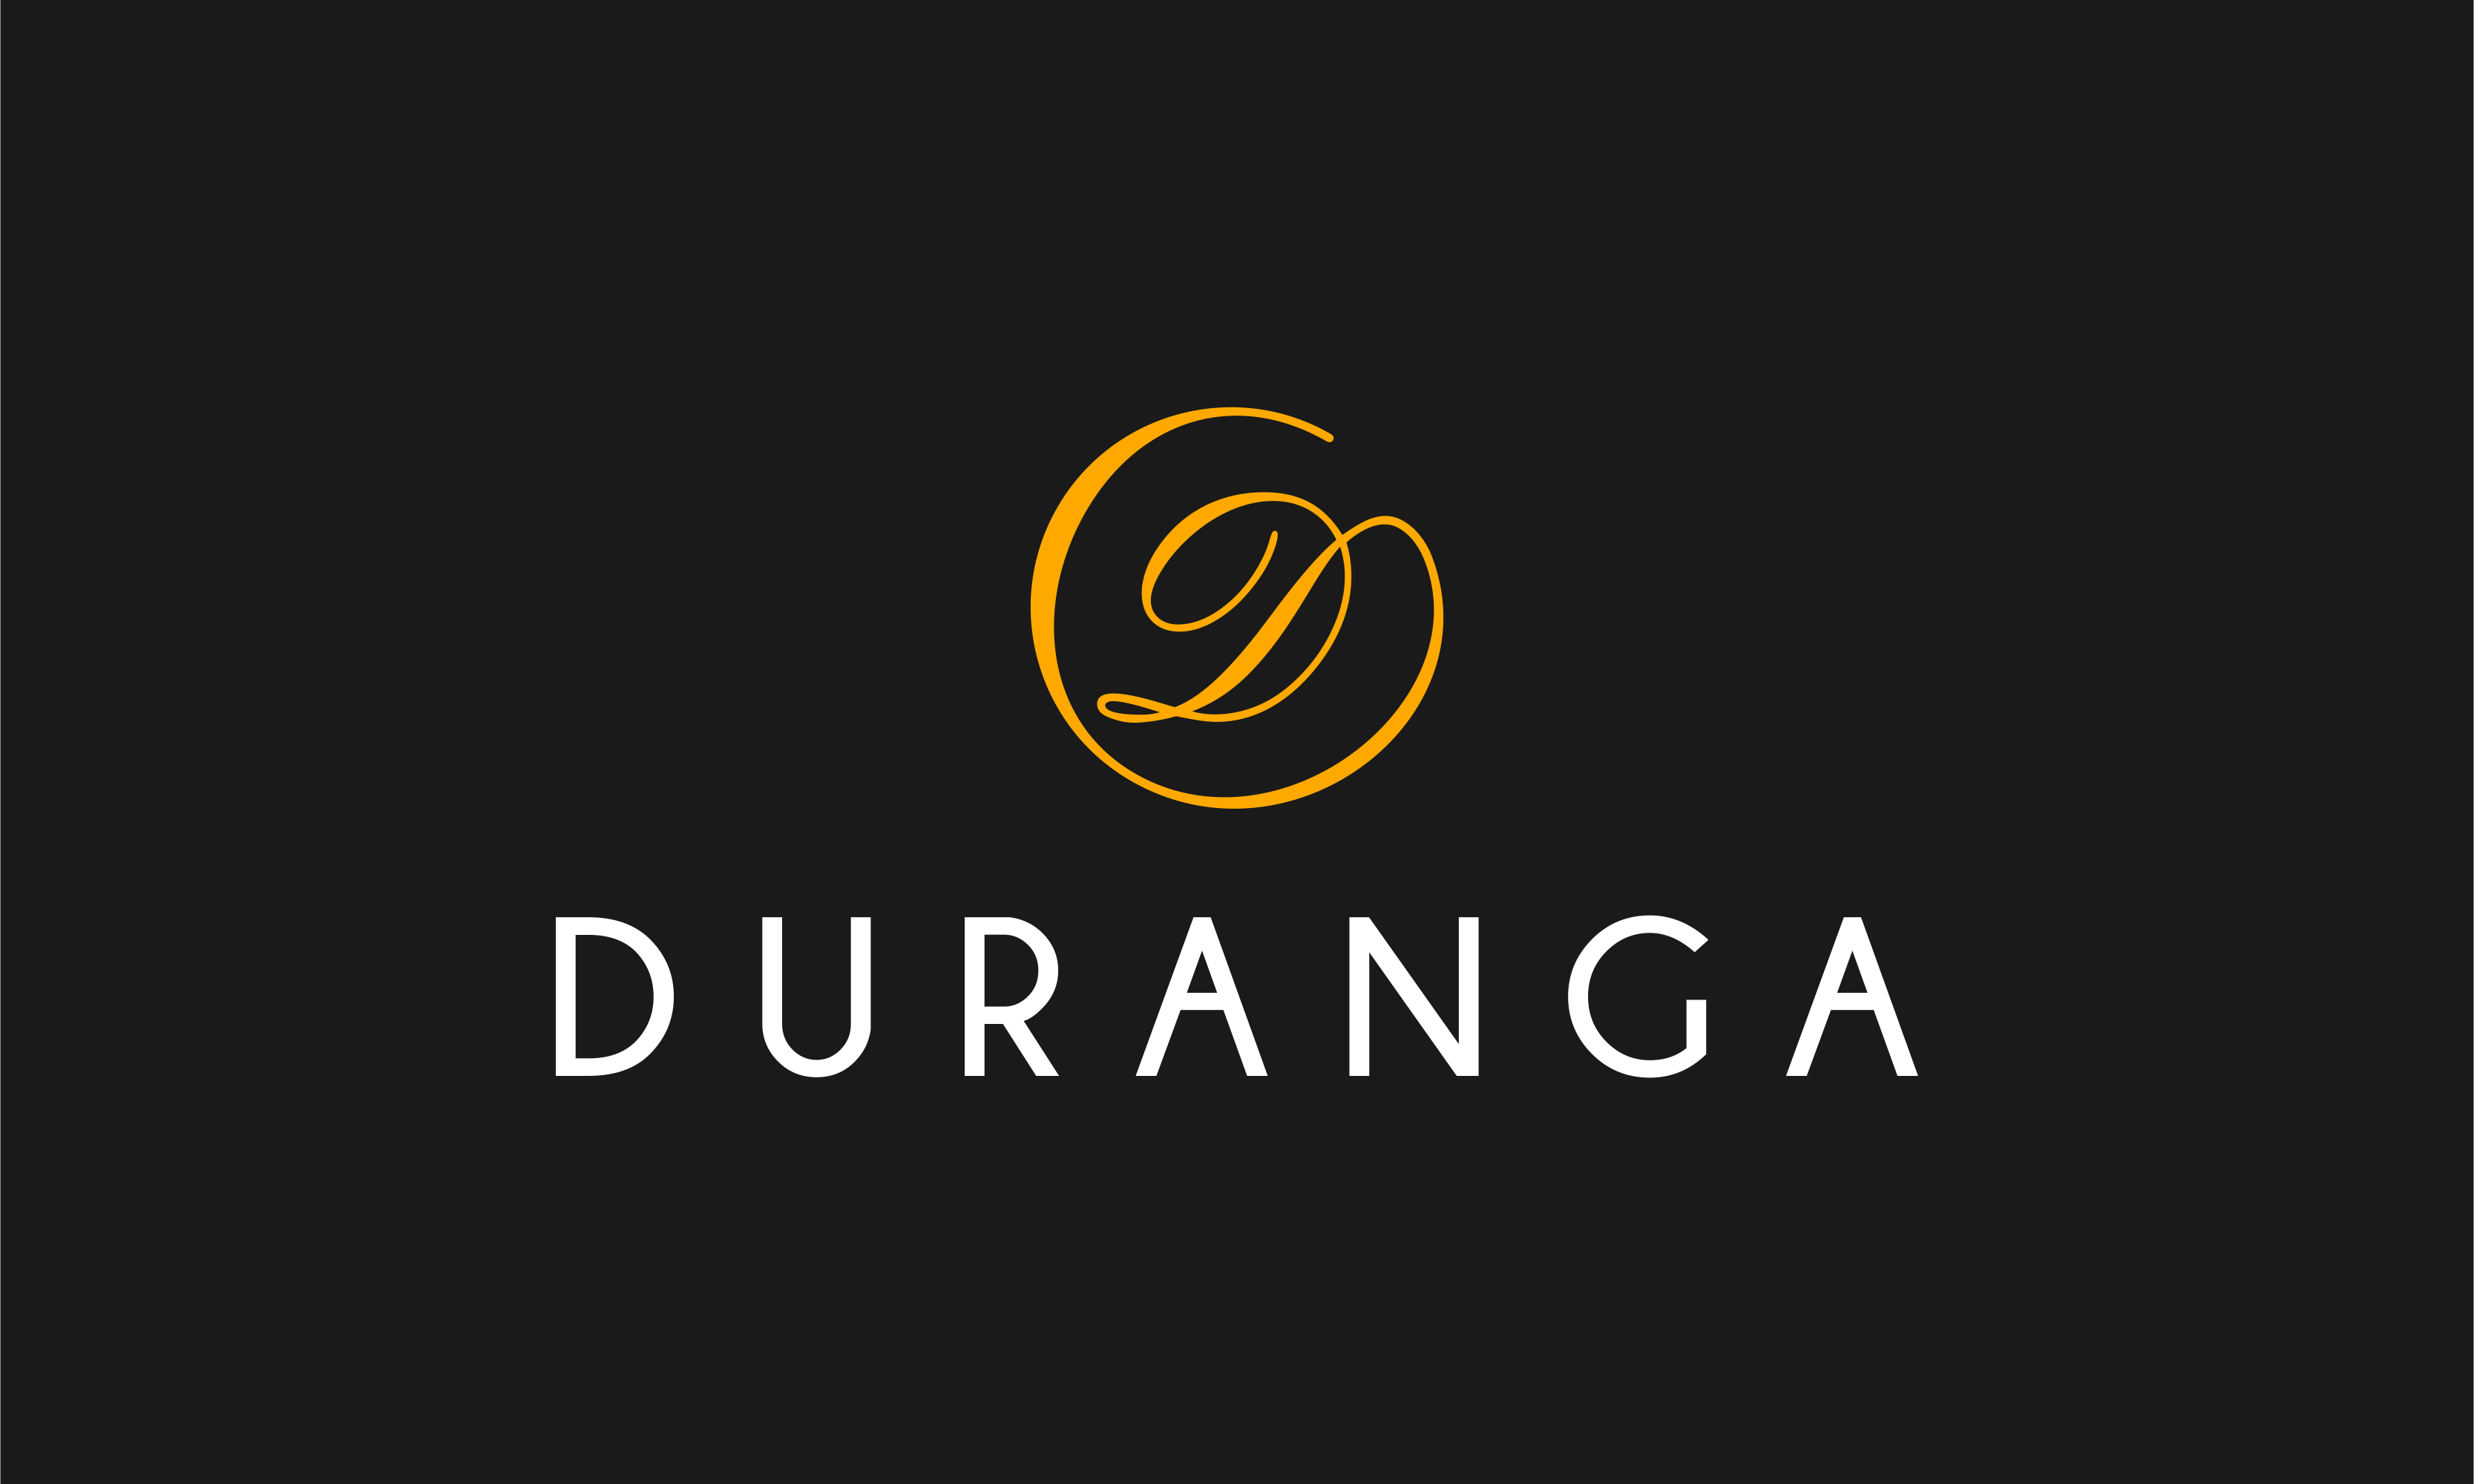 Duranga - Retail brand name for sale